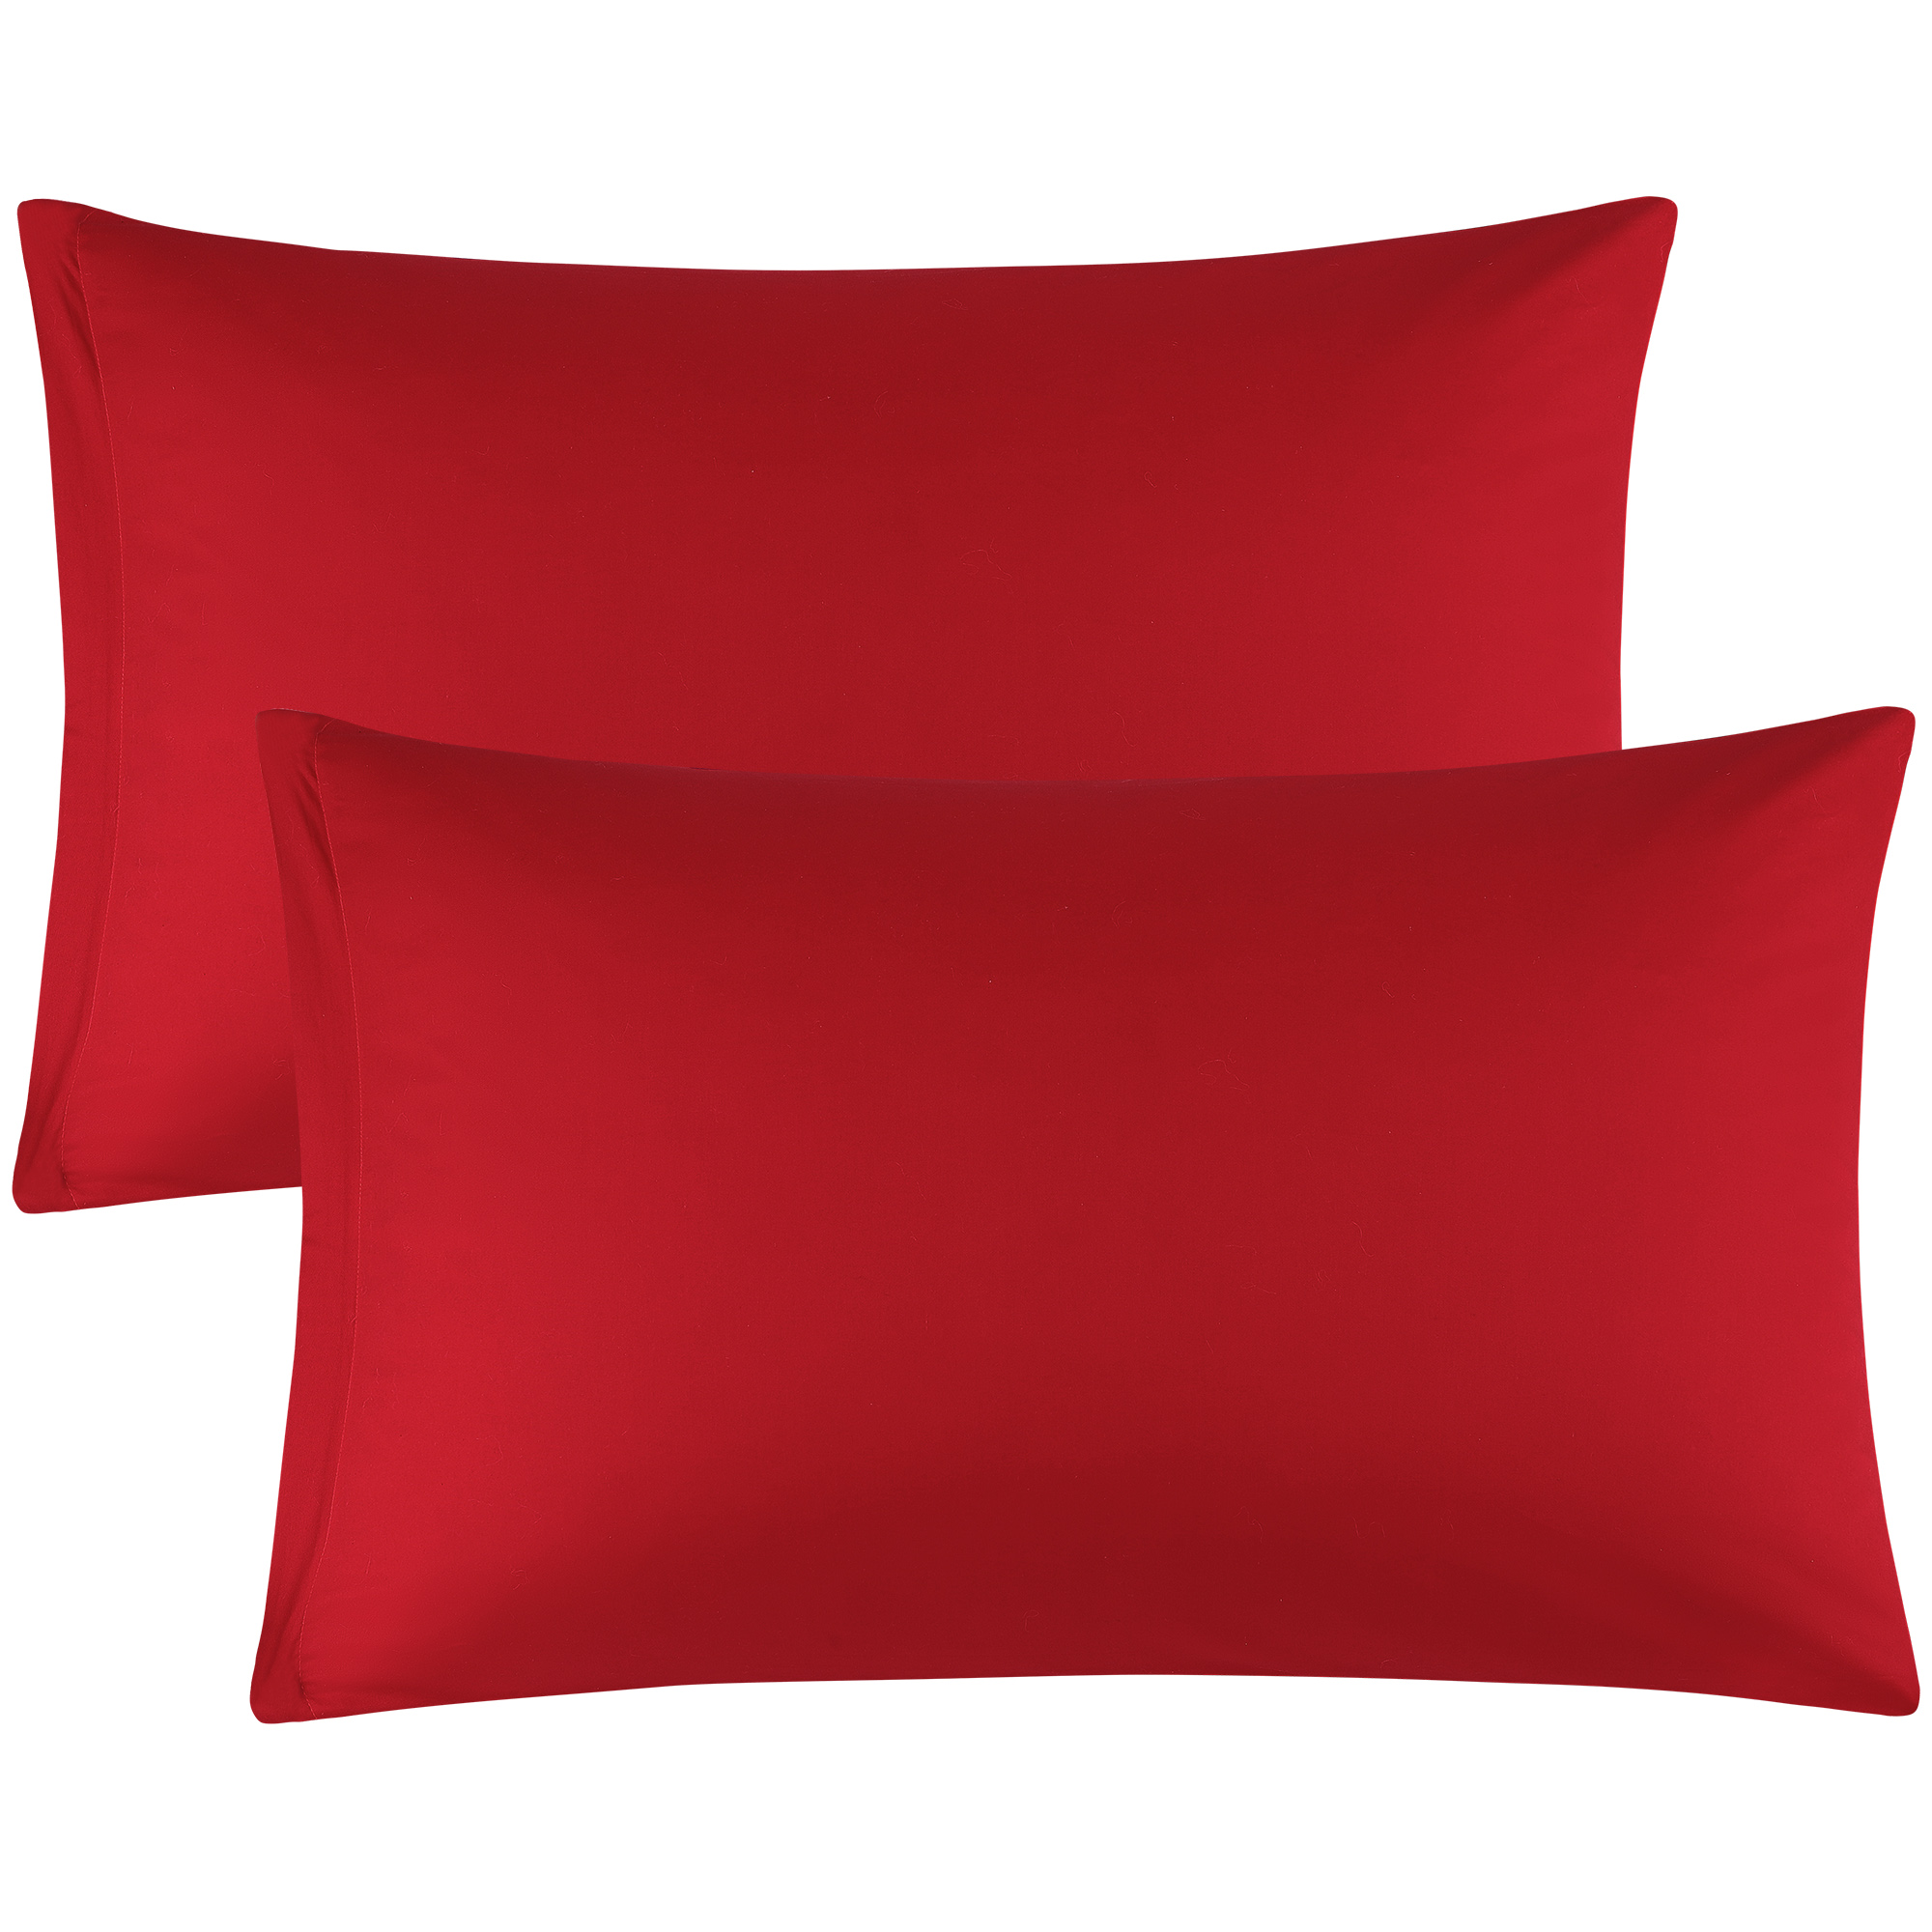 Zippered Cases Pillowcases Covers Egyptian Cotton 2-Pack (20 x 26 Inch, Red)